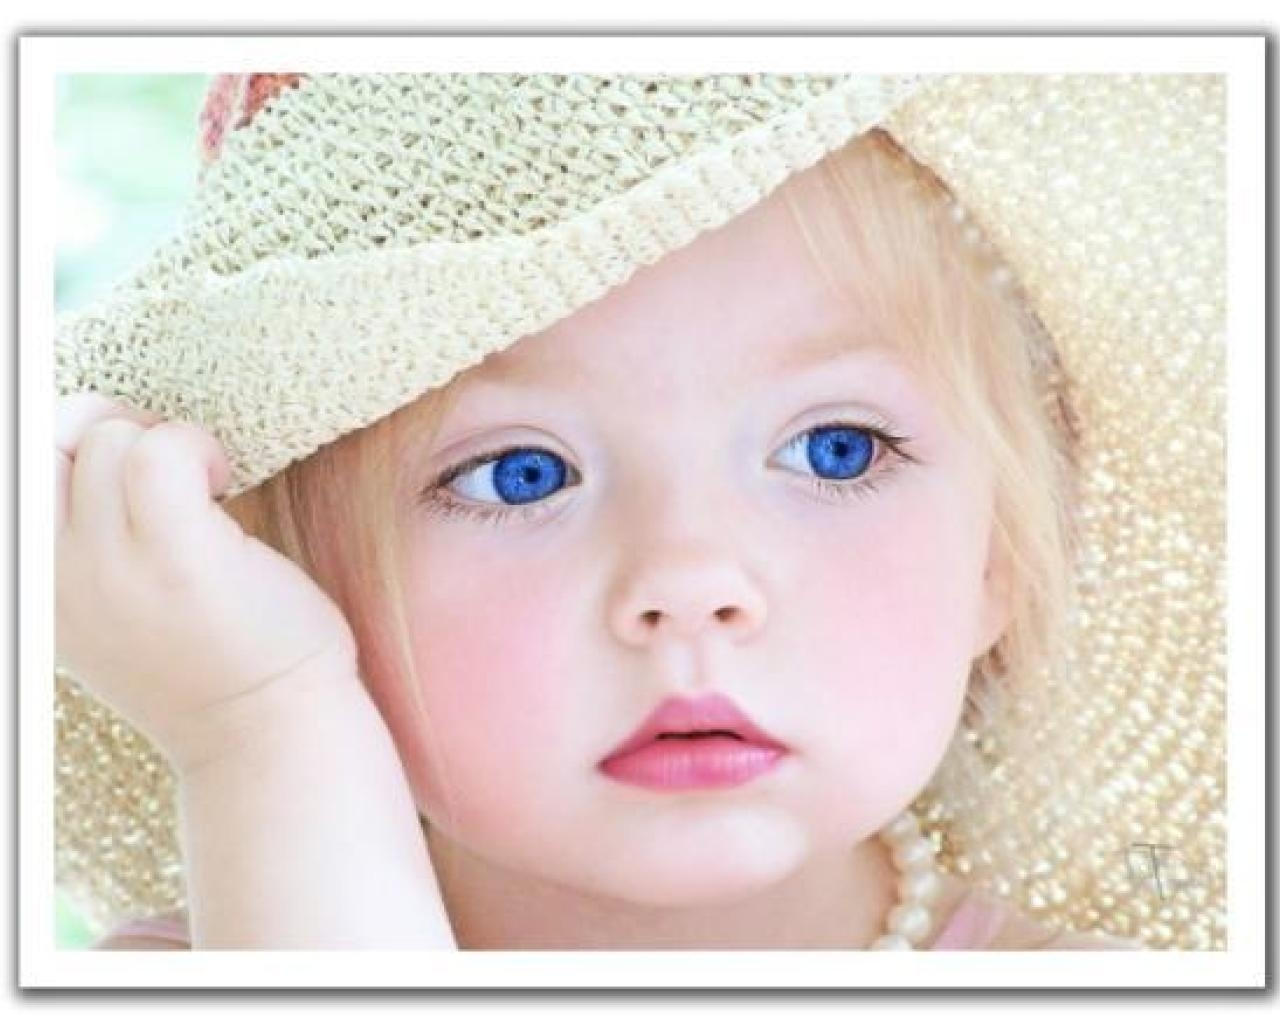 beautiful babies wallpapers - wallpaper cave | baby | pinterest